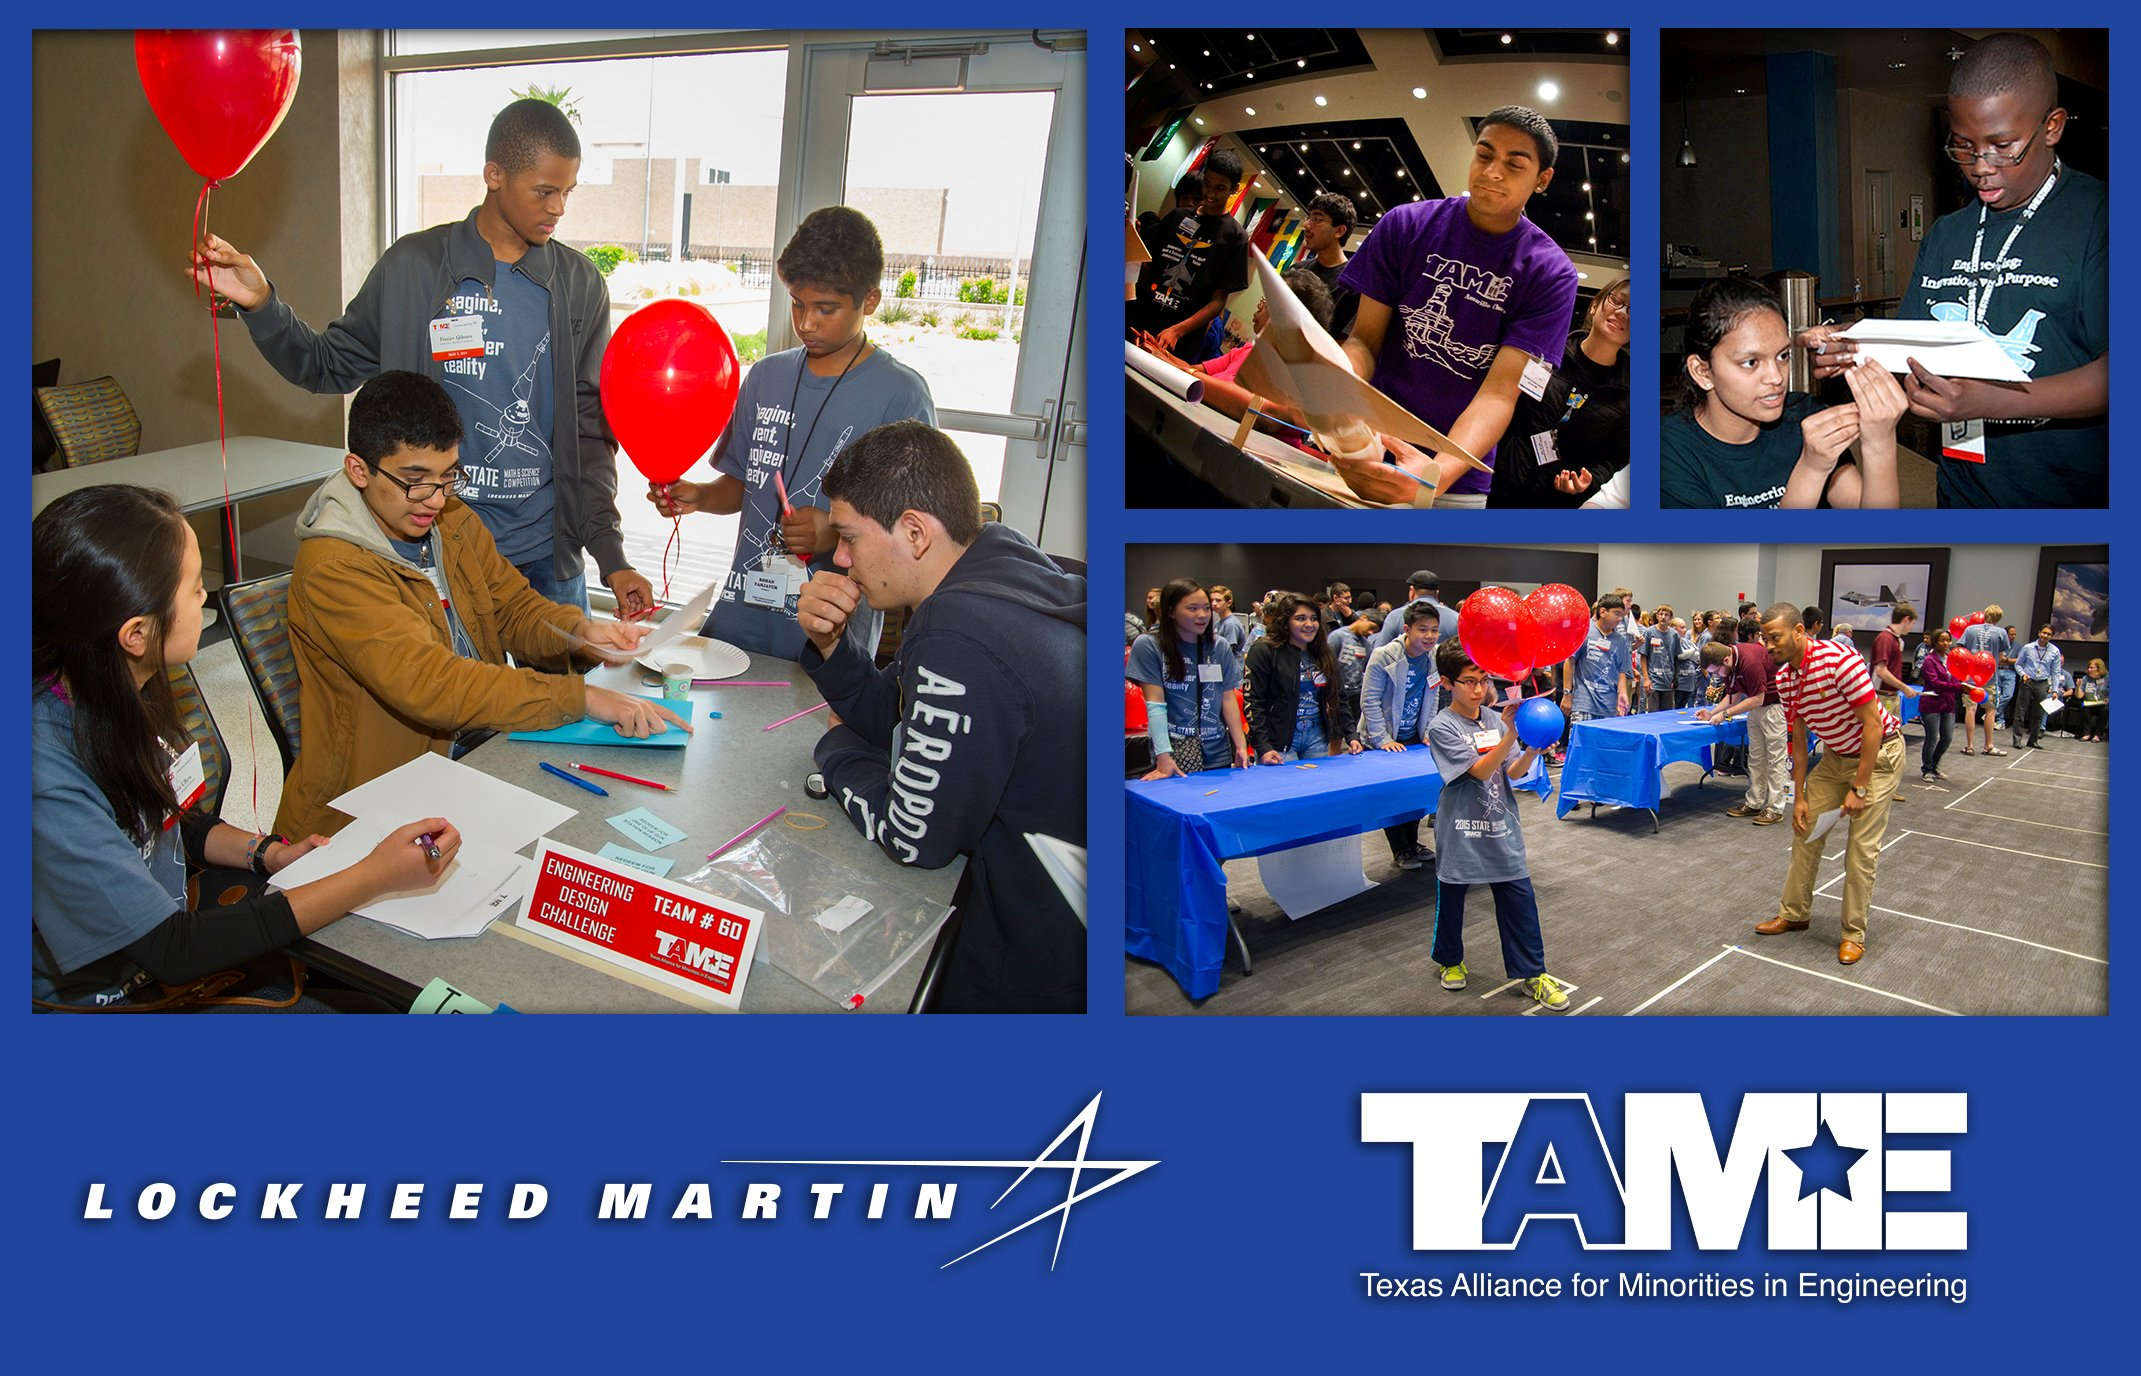 The Texas Alliance for Minorities in Engineering (TAME) is proud to announce that partner Lockheed Martin Aeronautics has generously awarded $30,000 to empower Texan students to pursue careers in science, technology, engineering and math. math, science, and engineering.